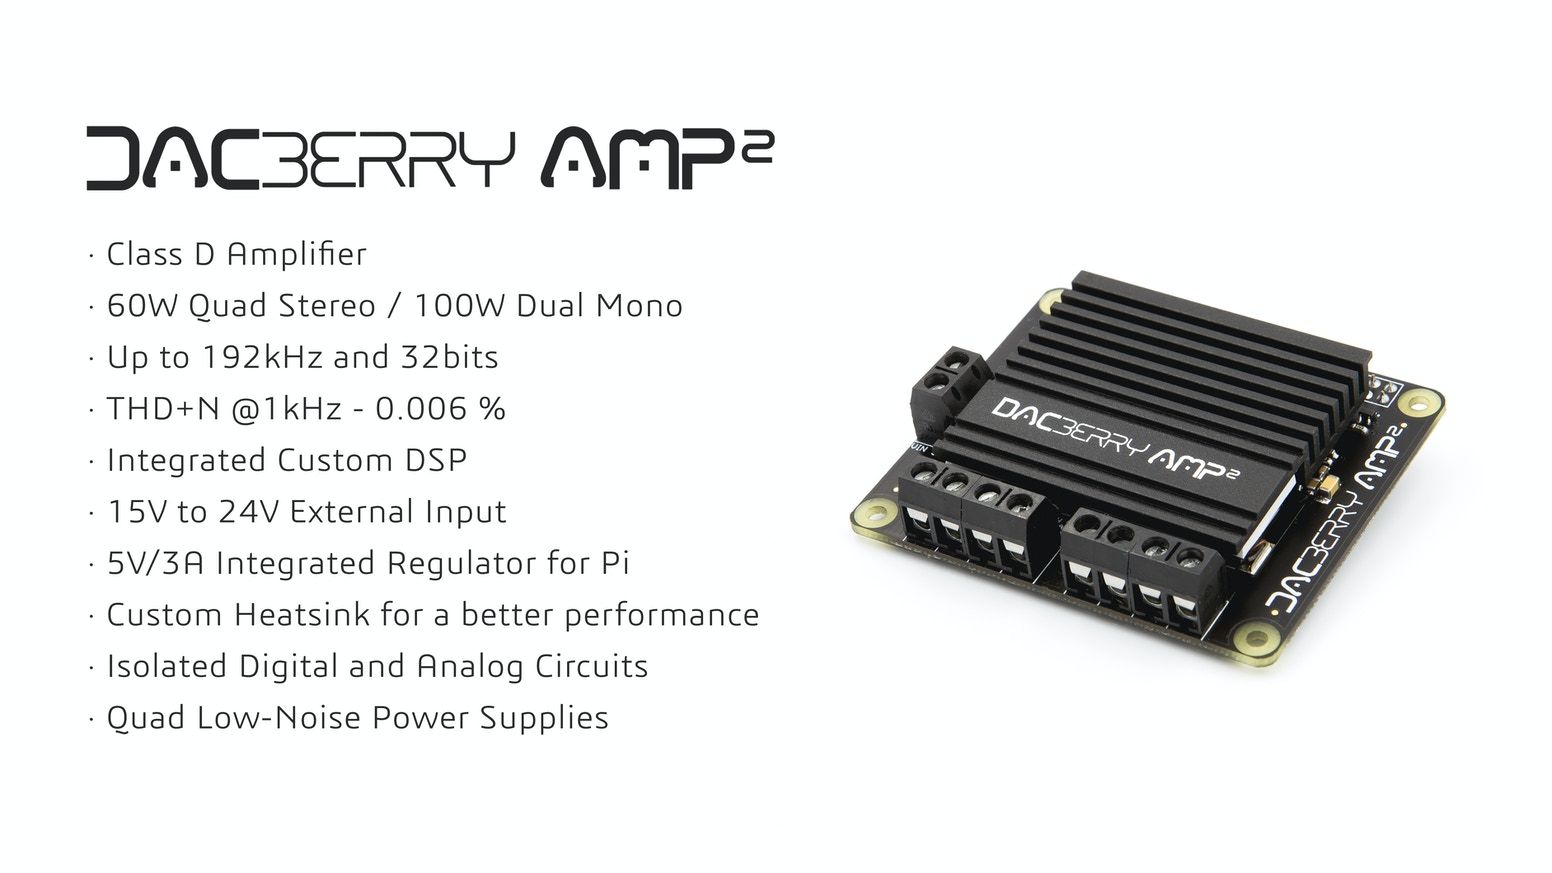 High End Audio Amplifier board with up to 100W per channel in dual mono. For Raspberry Pi, compatible with Asus Tinker board and others